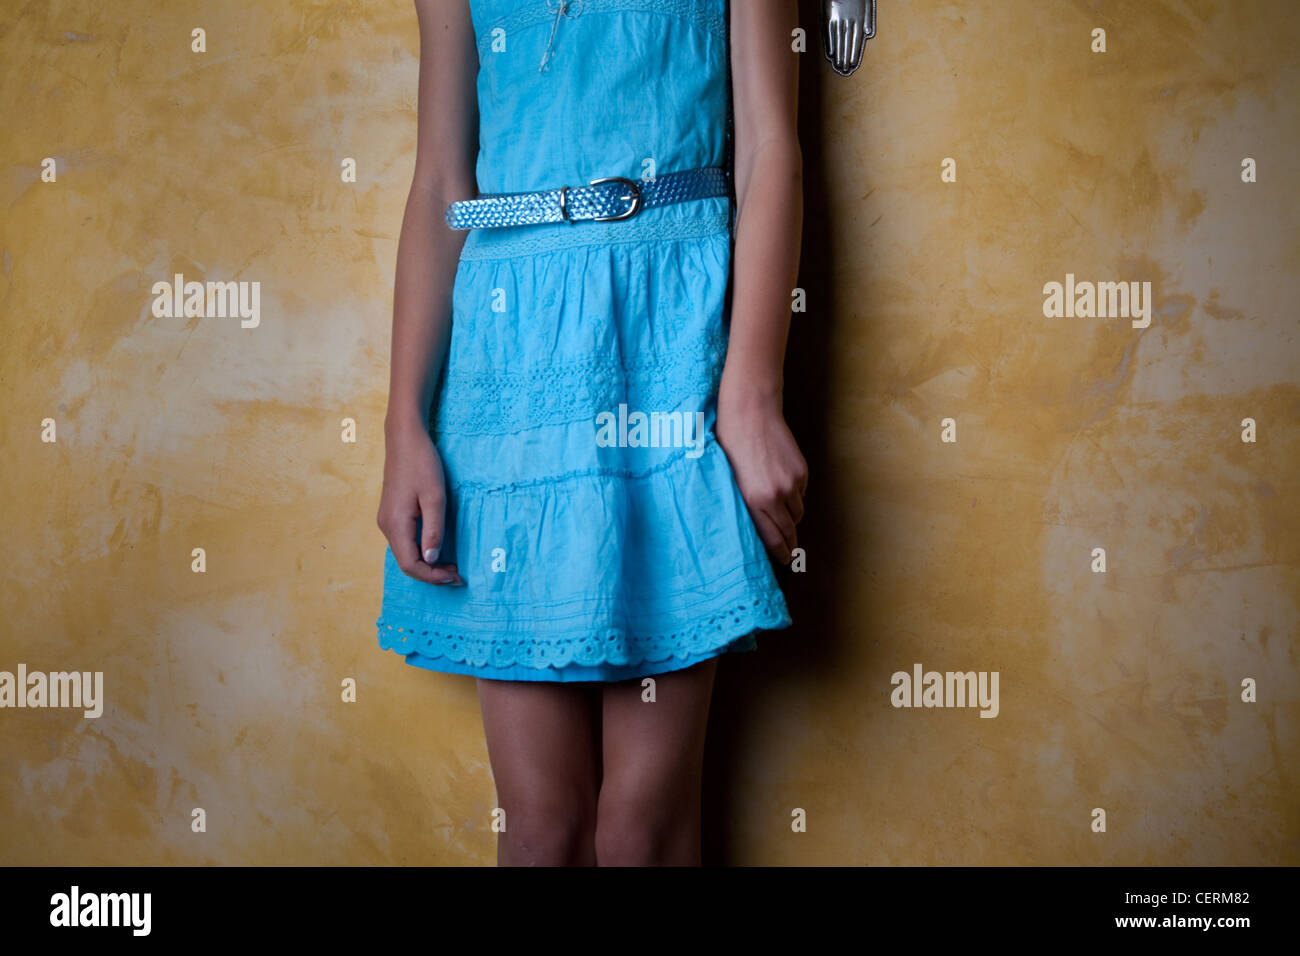 girl wearing blue dress standing against an adobe wall - Stock Image